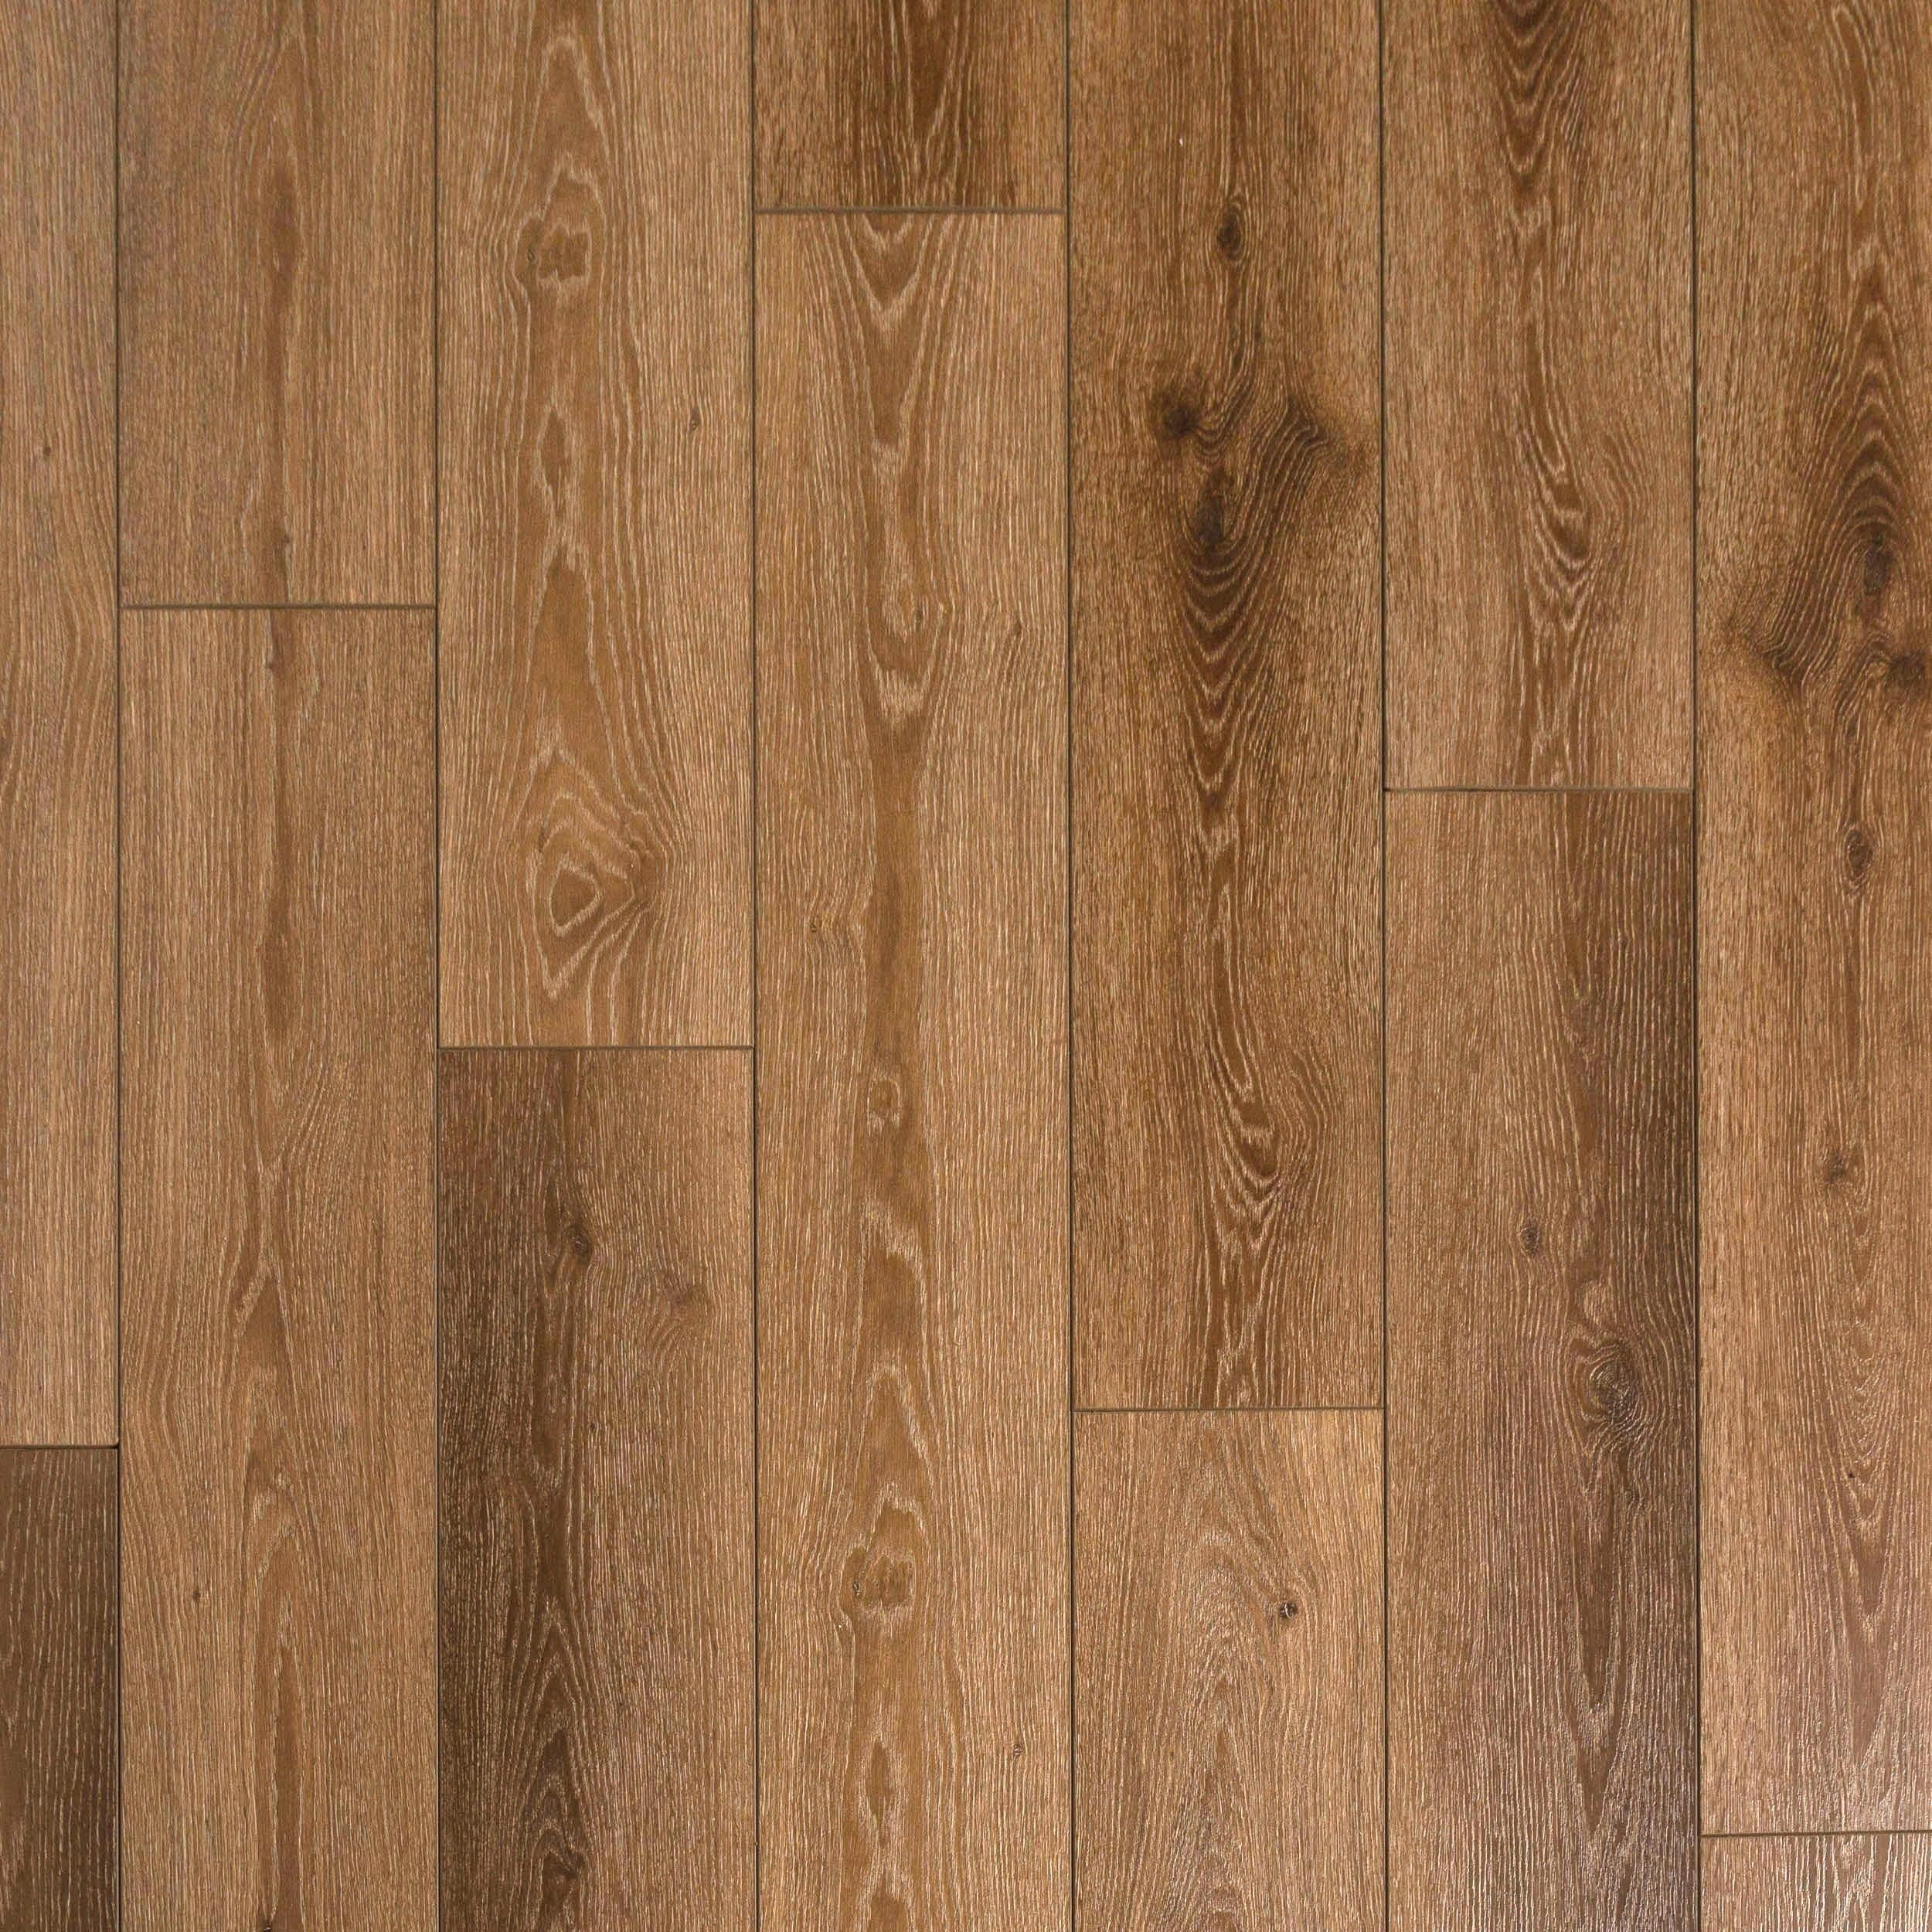 Amazing Light Wood Flooring Take A Look At Our Review For Much More Concepts In 2020 Luxury Vinyl Plank Vinyl Plank Wood Floor Texture